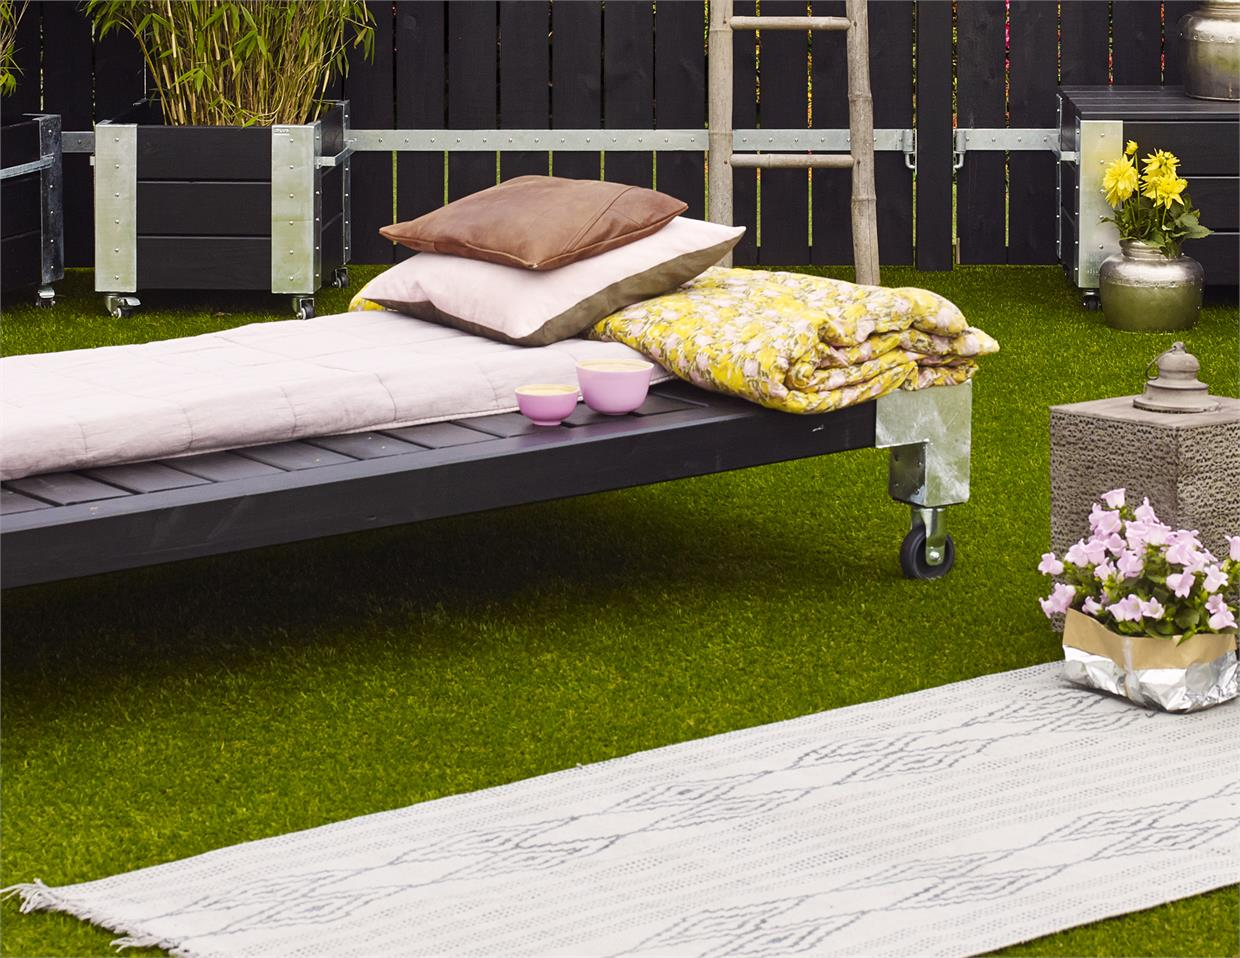 garten im quadrat holz liege cubic modernes gartenbett mobil schwarz. Black Bedroom Furniture Sets. Home Design Ideas